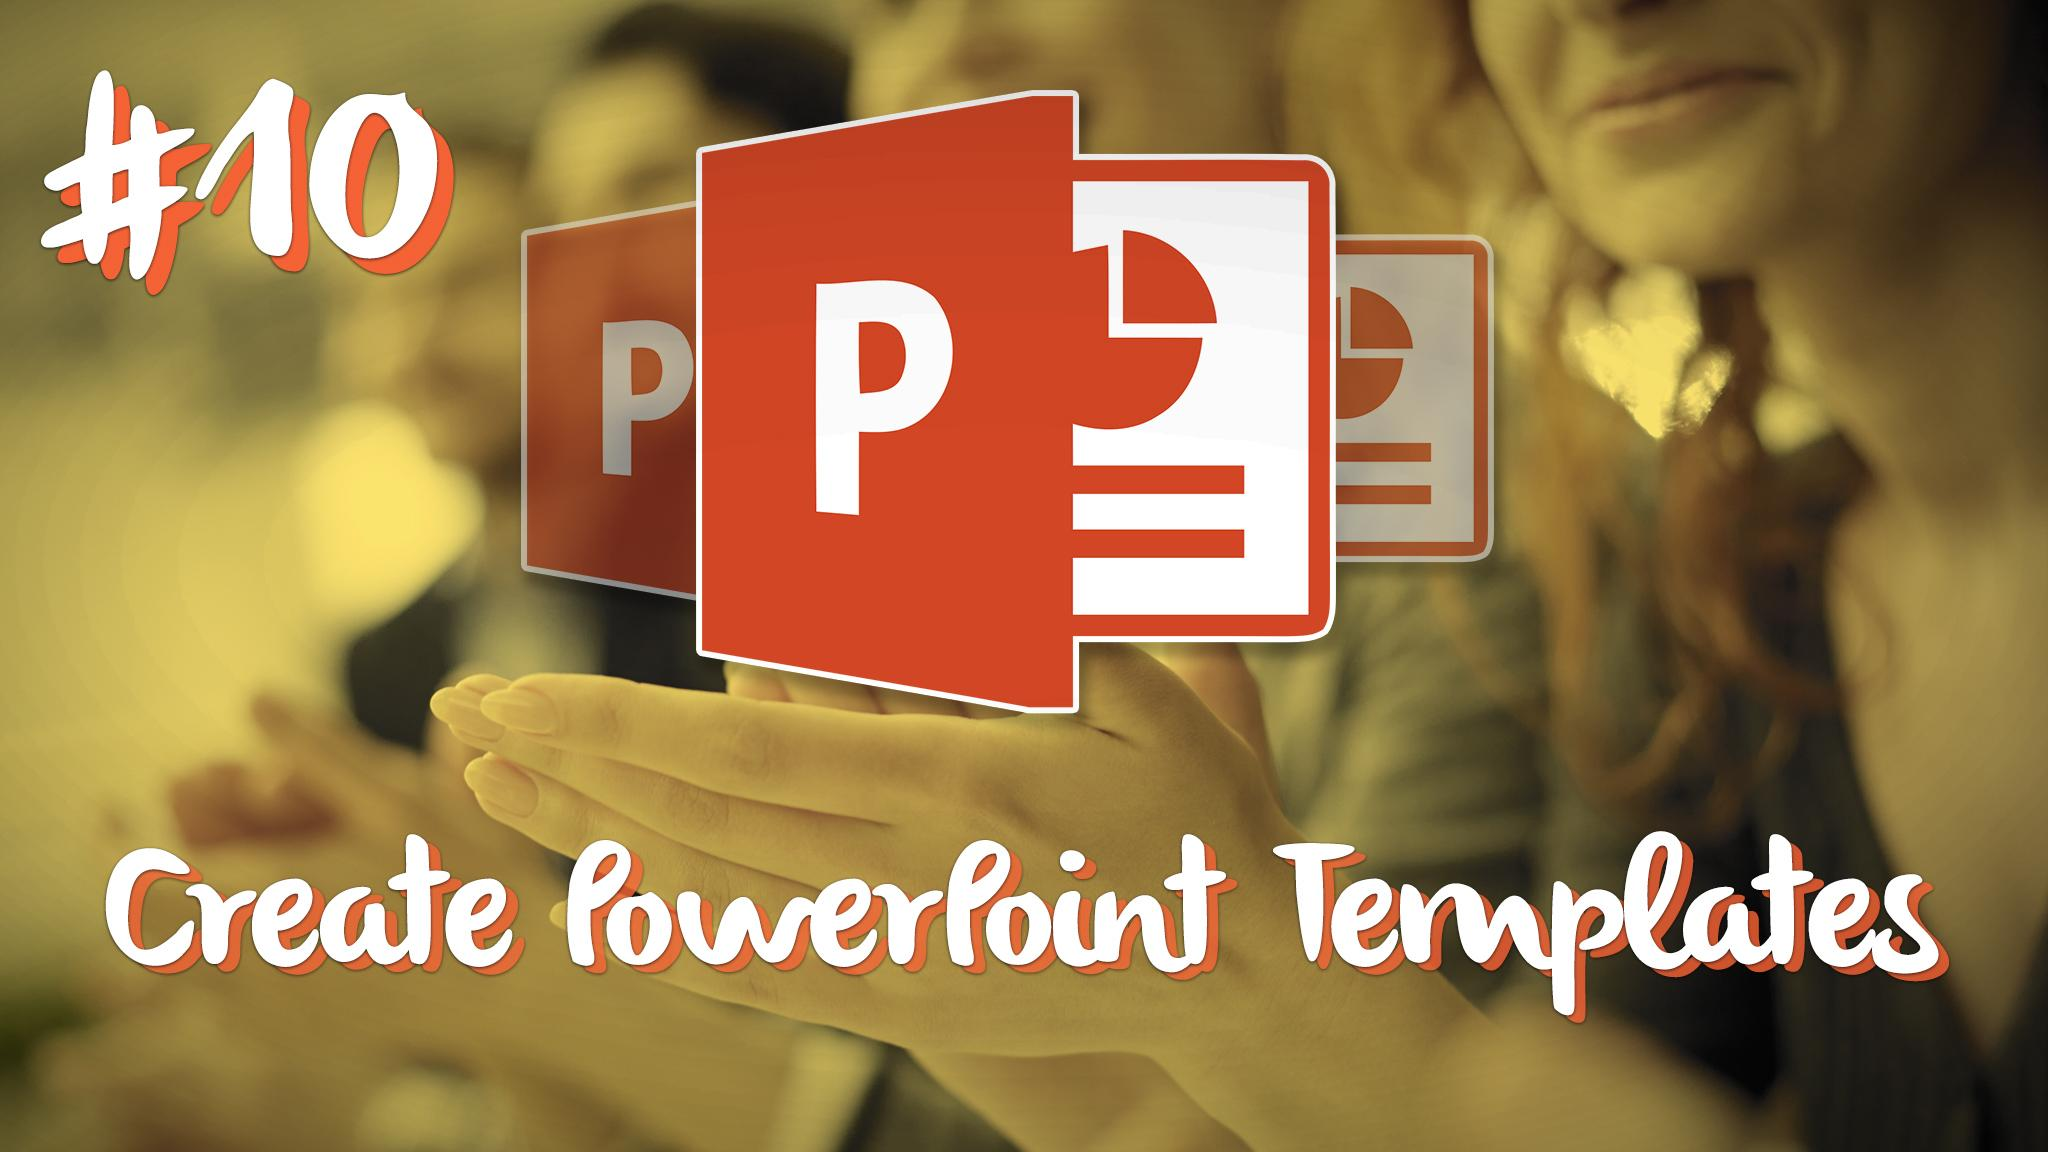 Powerpoint masterclass series 10 create powerpoint templates i will take you by hand and teach to design great presentation templates and slides with confidence once completed you will be toneelgroepblik